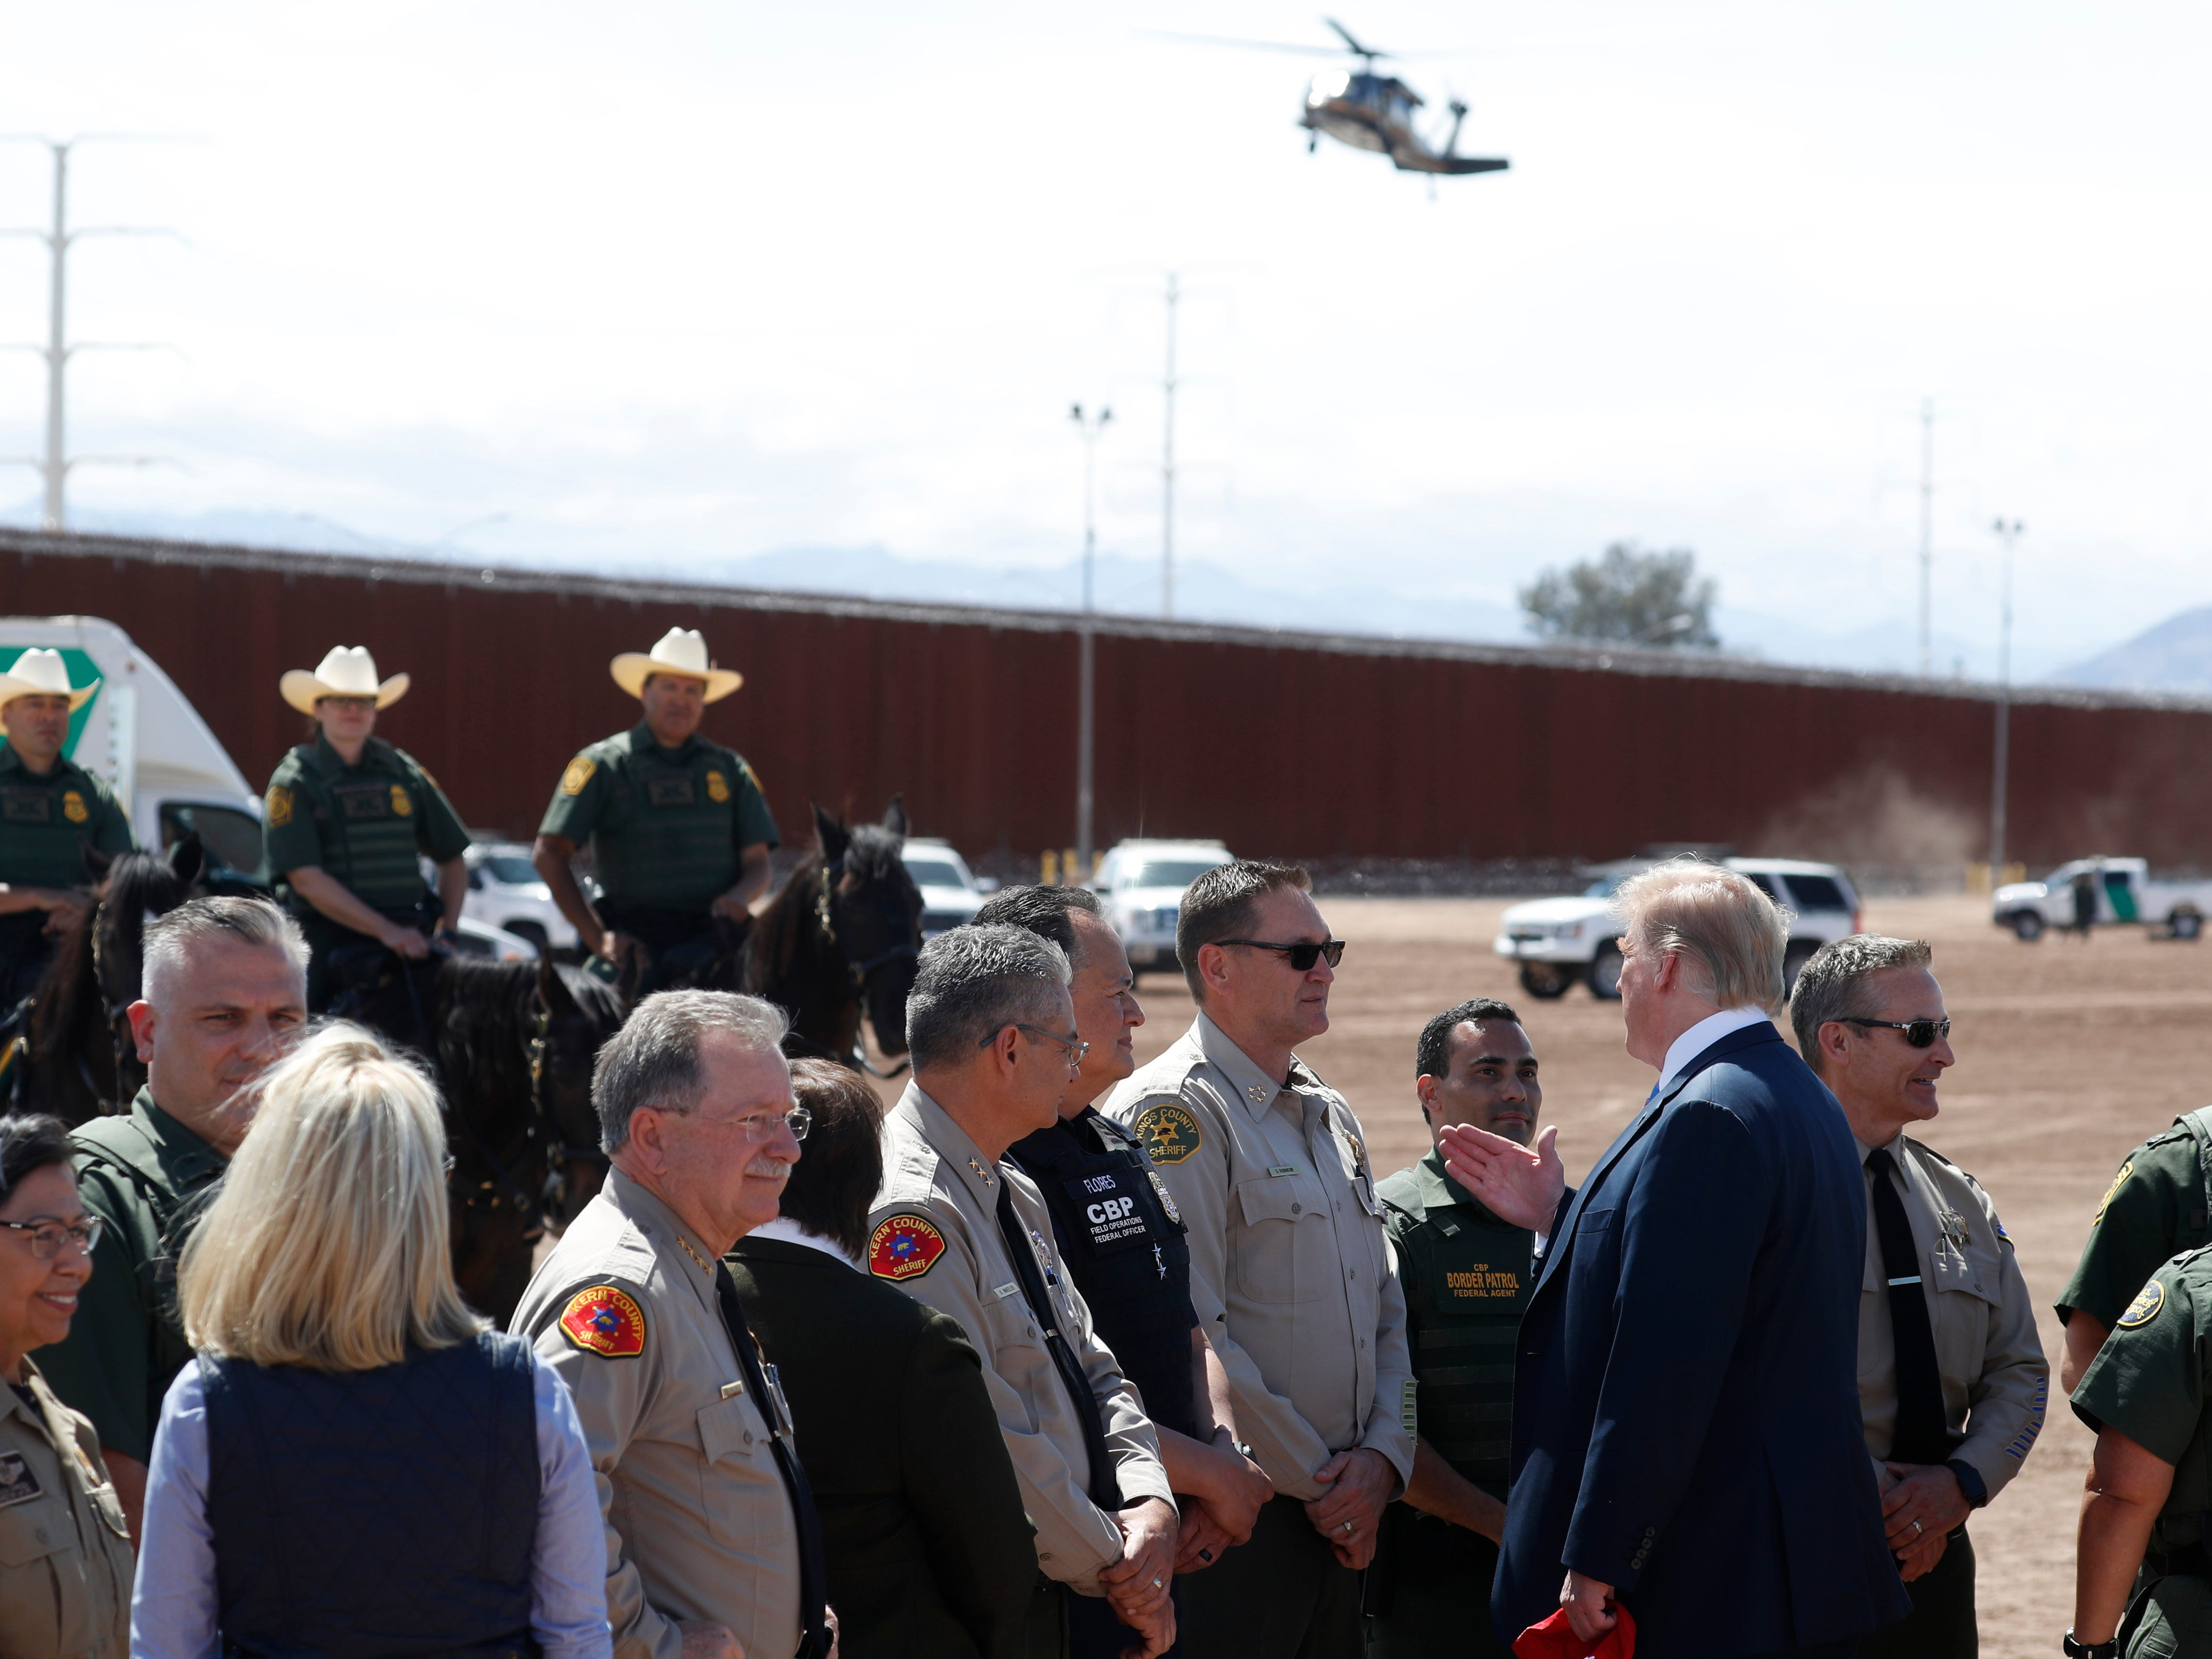 President Donald Trump visits a new section of the border wall with Mexico in Calexico, Calif., Friday April 5, 2019.